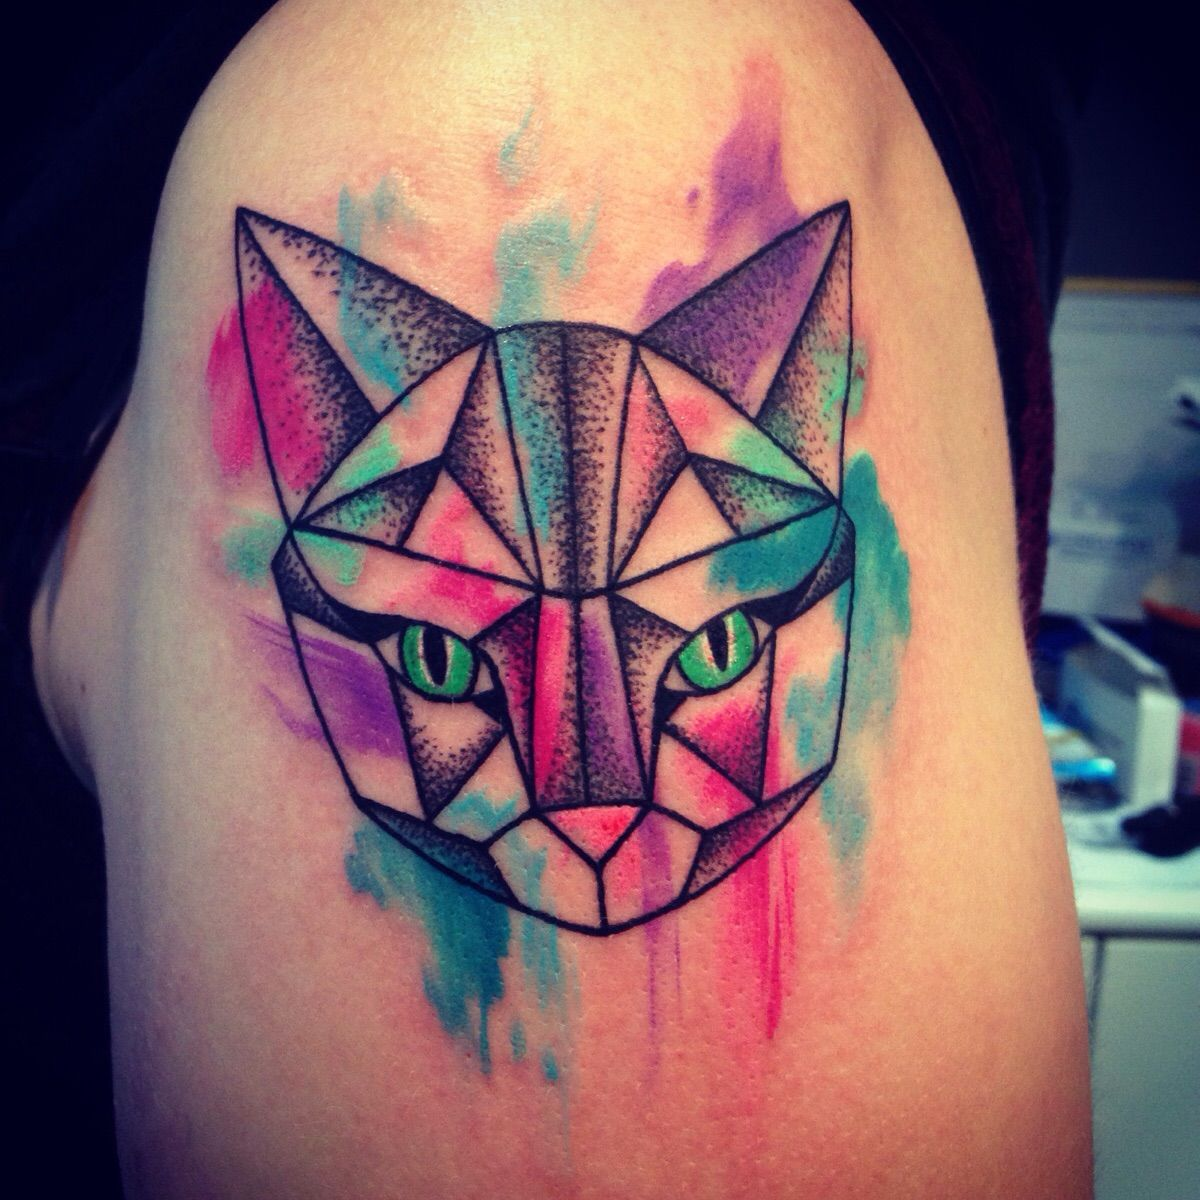 Space Cat Geometric Lines With Dot Shading And Water Colour Detail By Nadia At Eclectic Ink In Glasgow Geometric Cat Tattoo Geometric Cat Geometric Tattoo